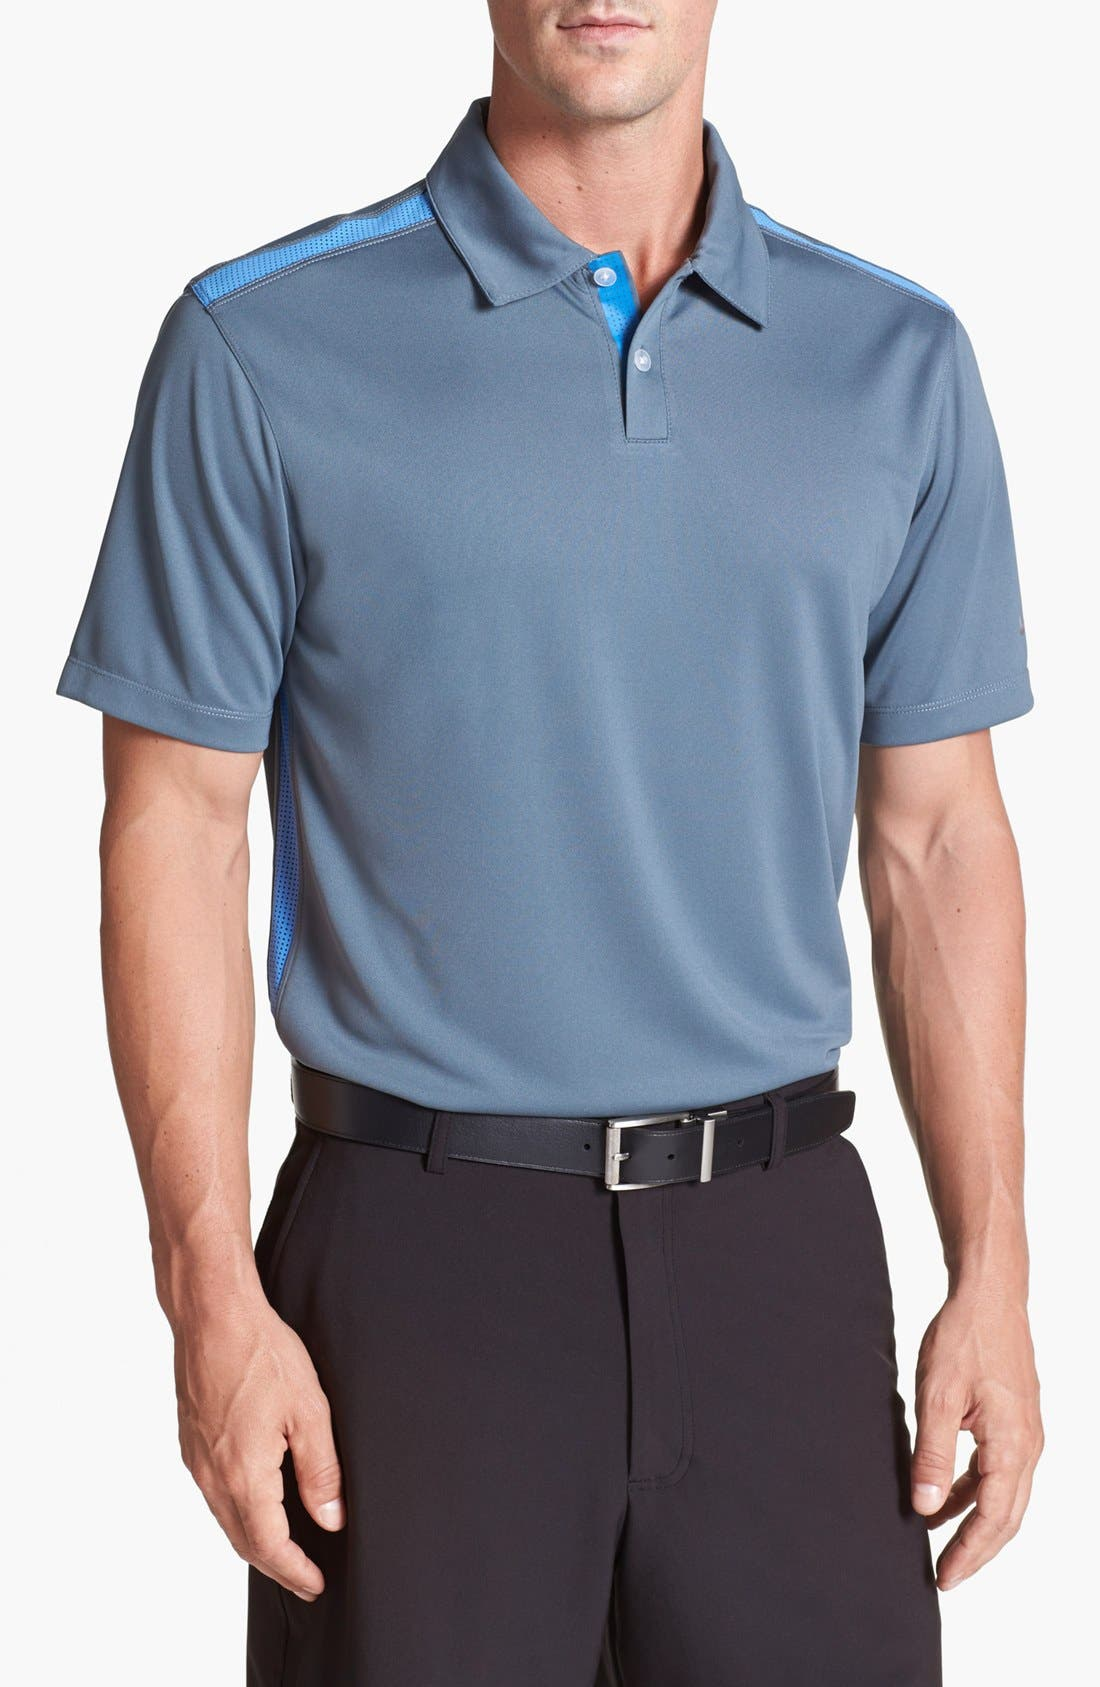 Alternate Image 1 Selected - Nike Dri-FIT Colorblock Polo